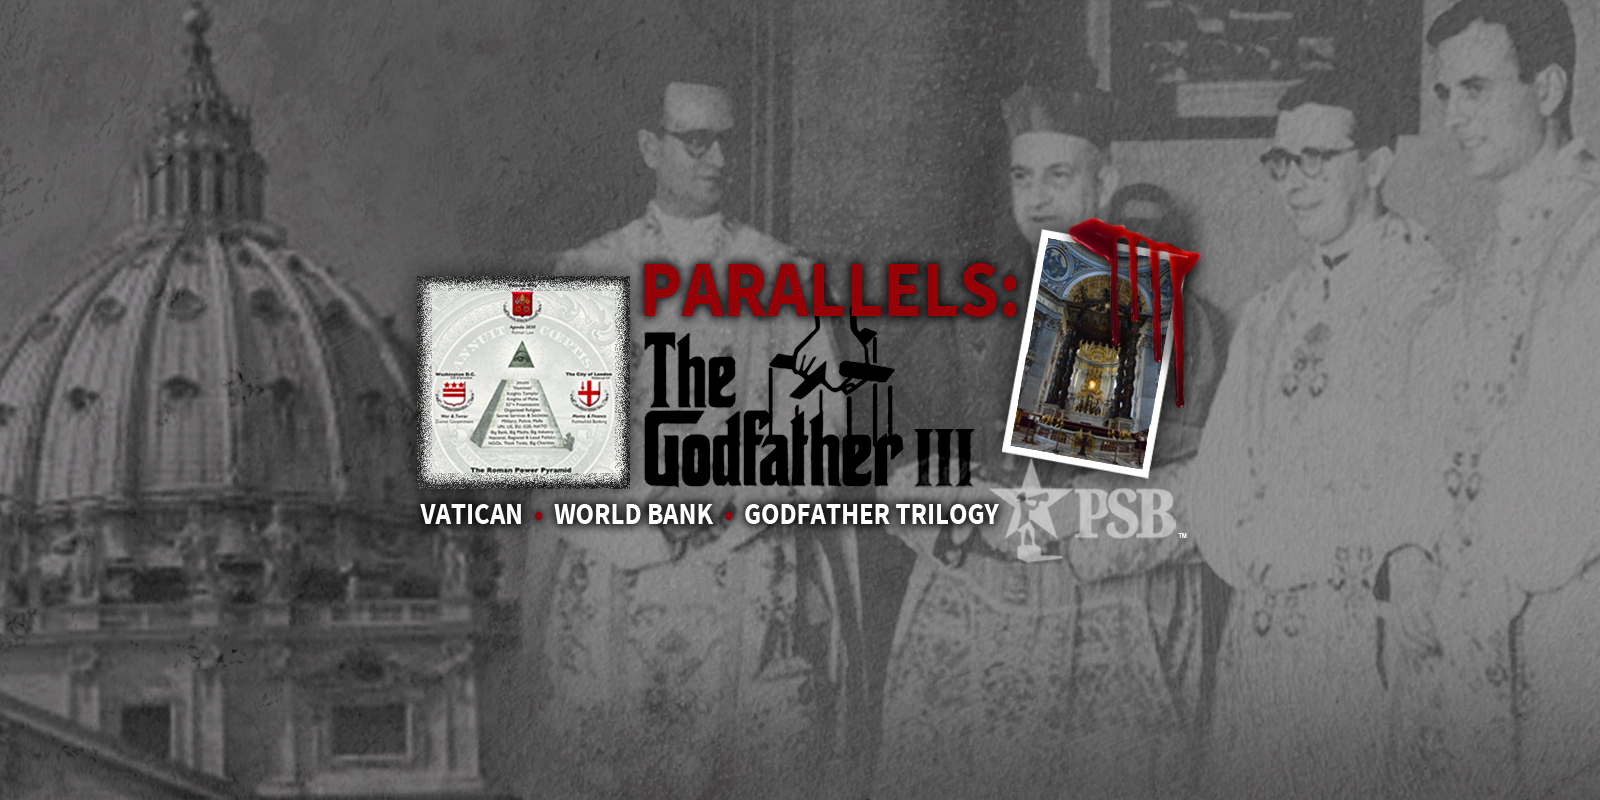 Godfather III Opus Dei and Internazionale Immobiliare